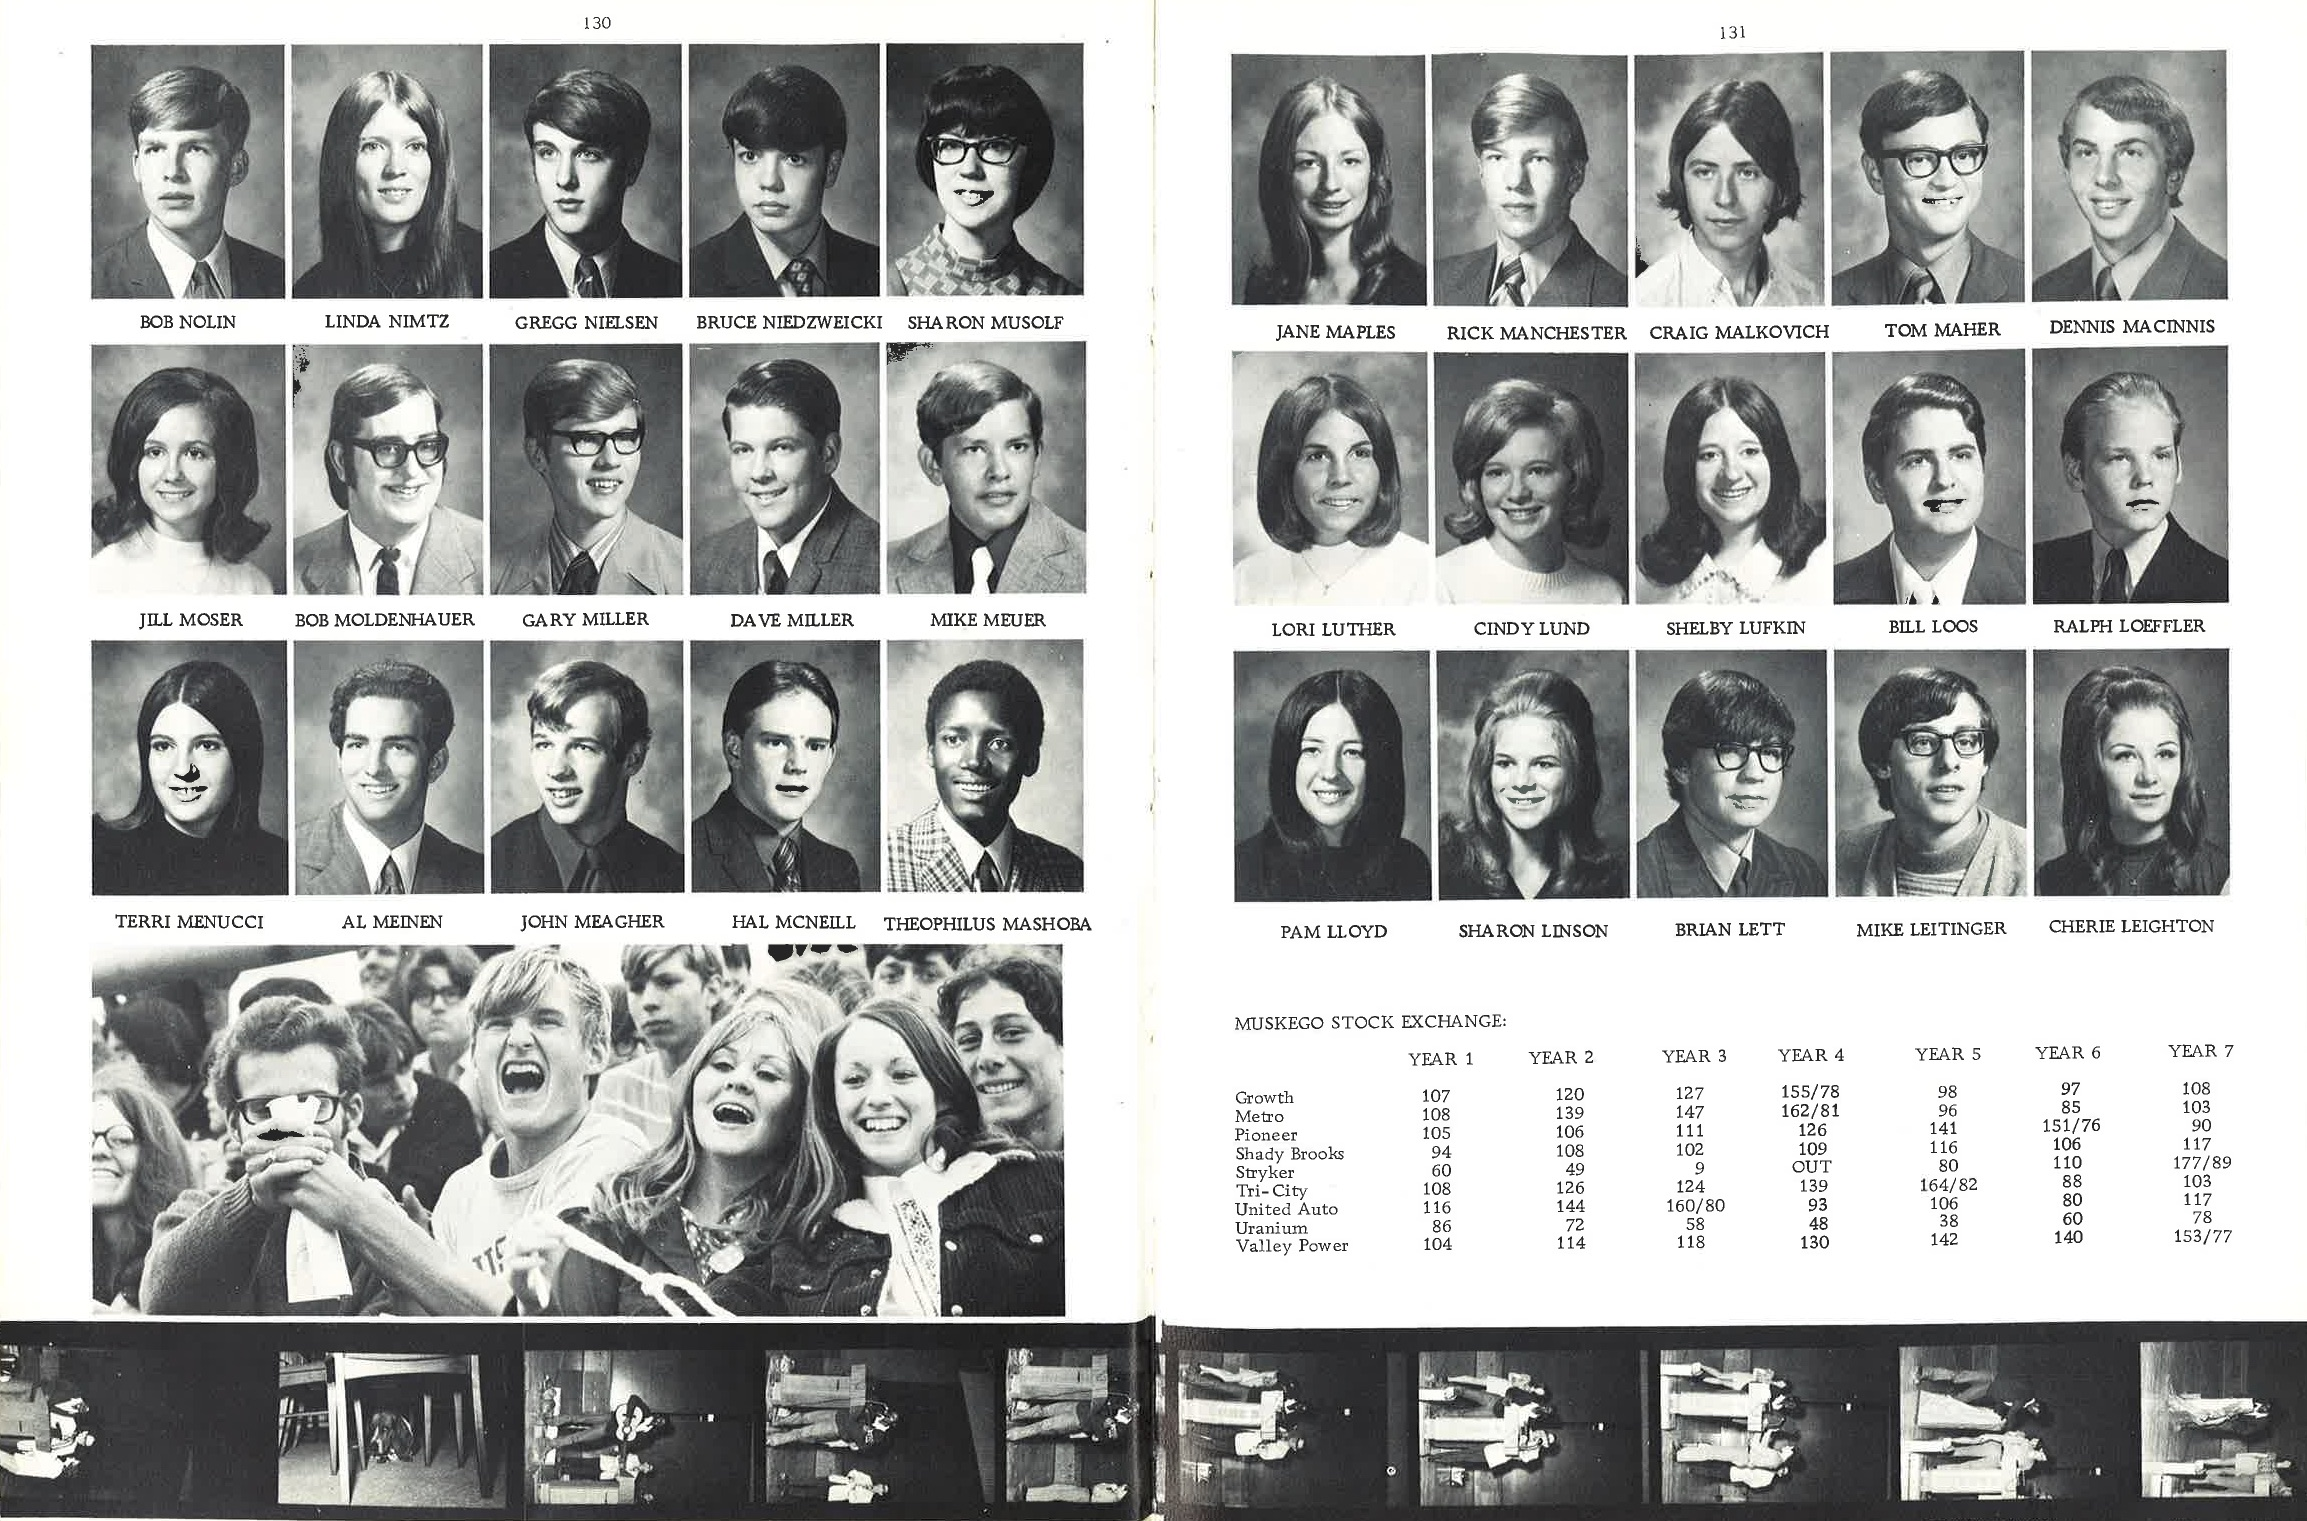 1972_Yearbook_130-131.jpg